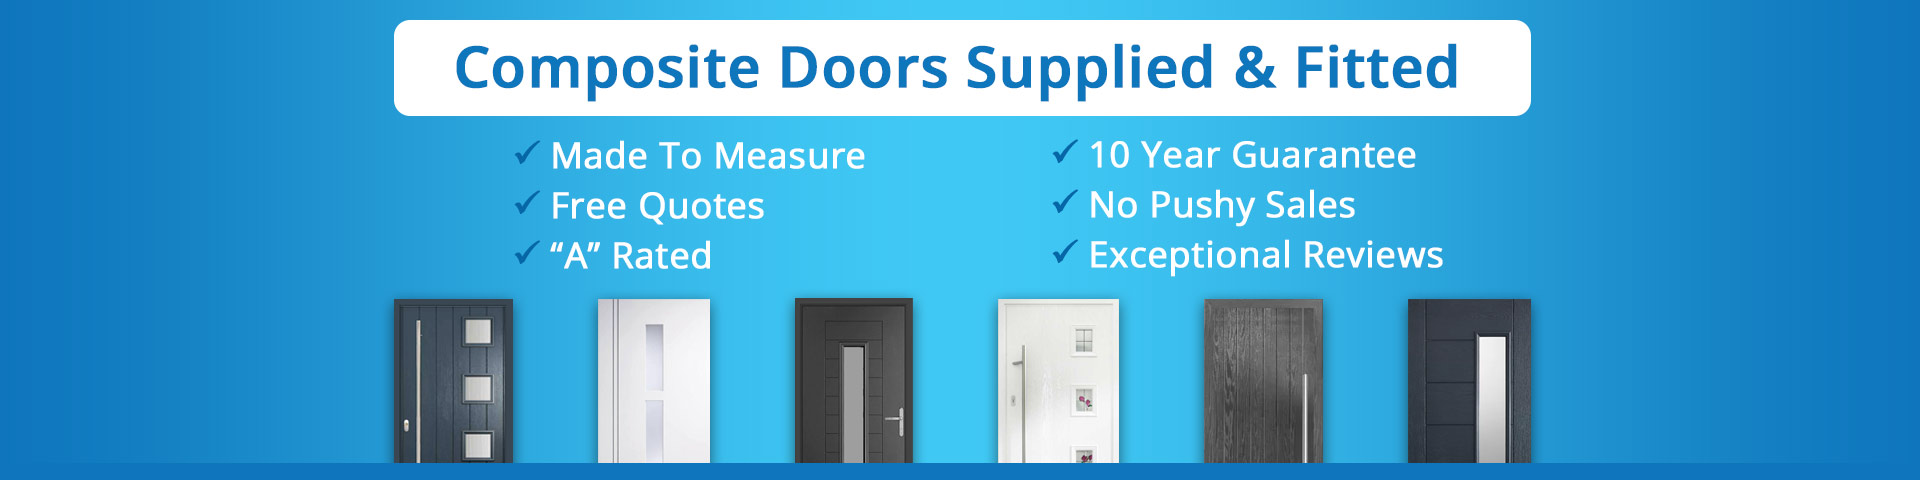 Composite Doors Lanarkshire